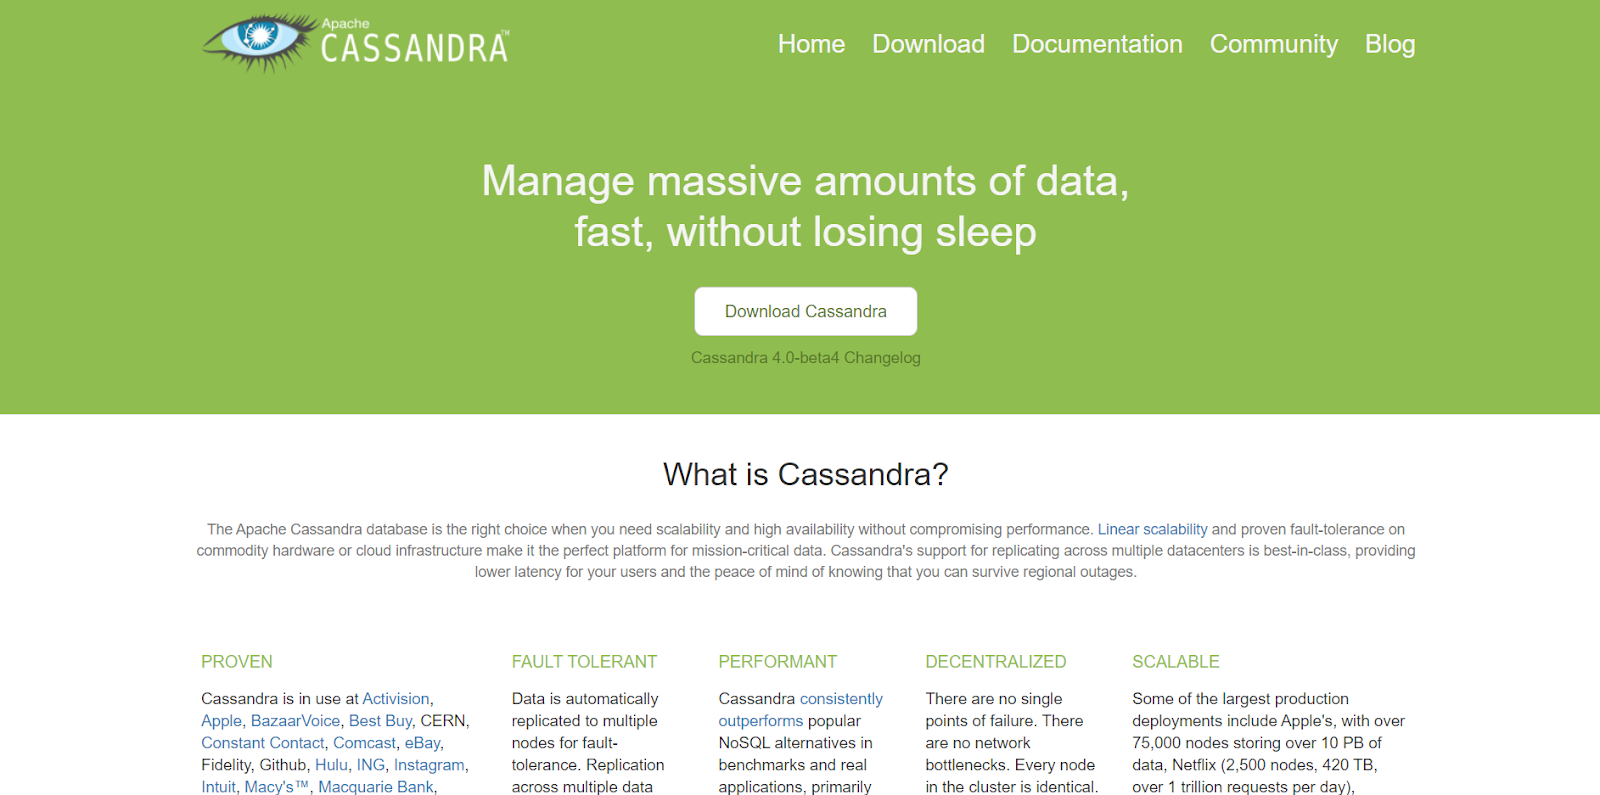 Cassandra is one of the big data tools